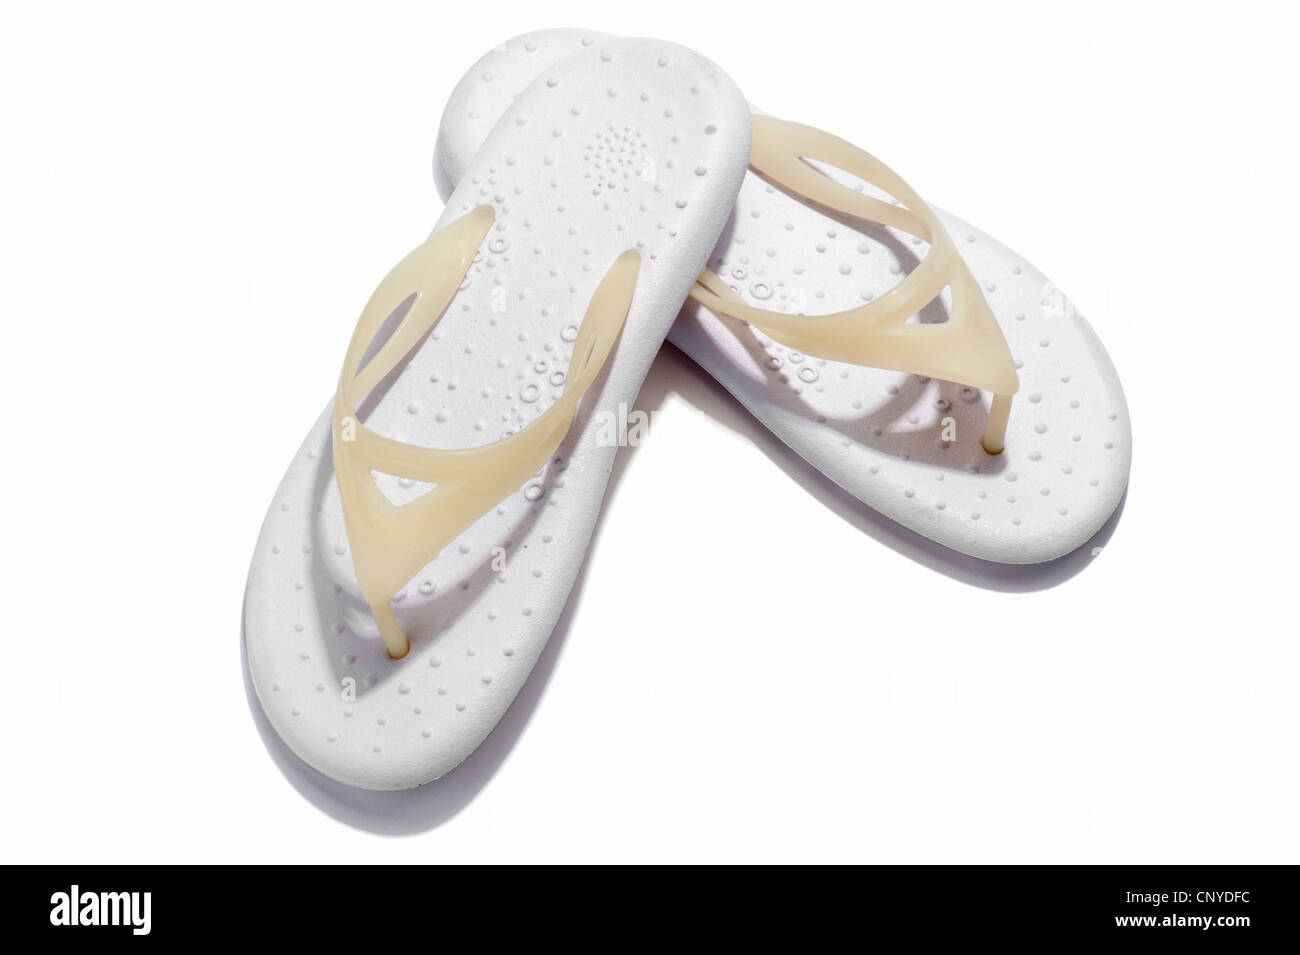 A pair of white flip flops - Stock Image